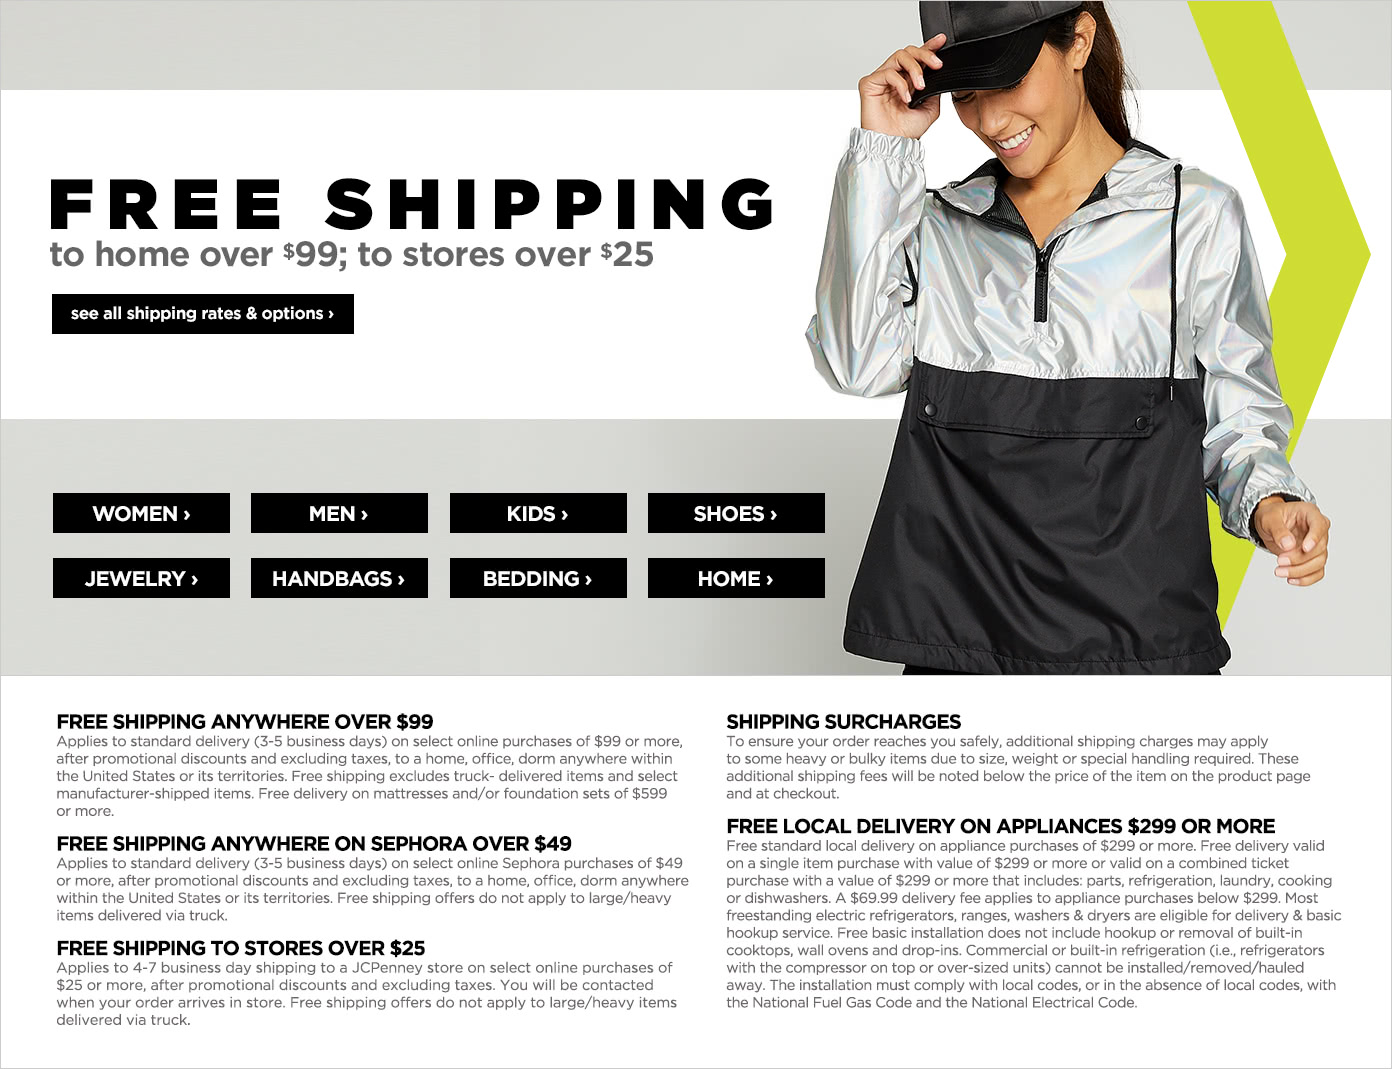 Free Shipping to home over $99, to stores over $25